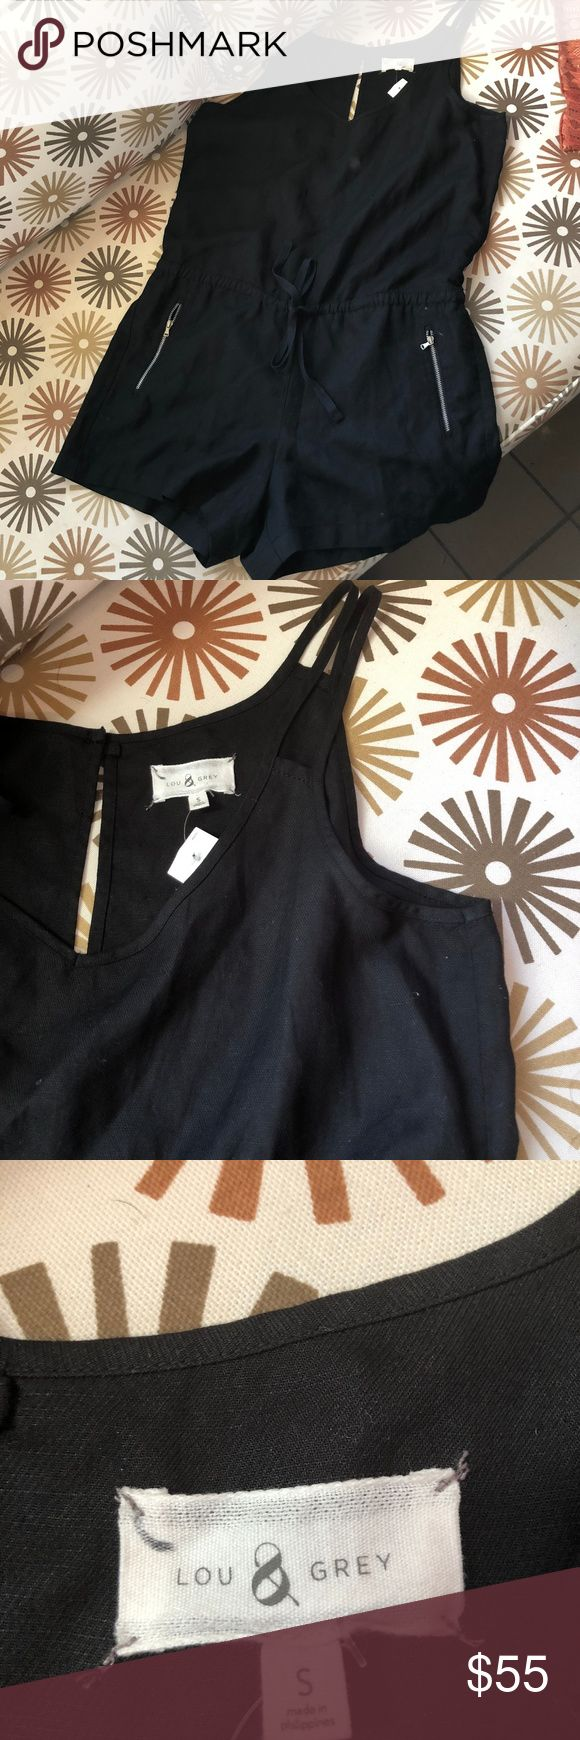 NWT! Anthropologie Brand Lou Grey Small Women NWT! Black Lou Grey Small Women Romper    84% Lyocell 16% Linen   The Romper also has pockets on both sides. Anthropologie Dresses